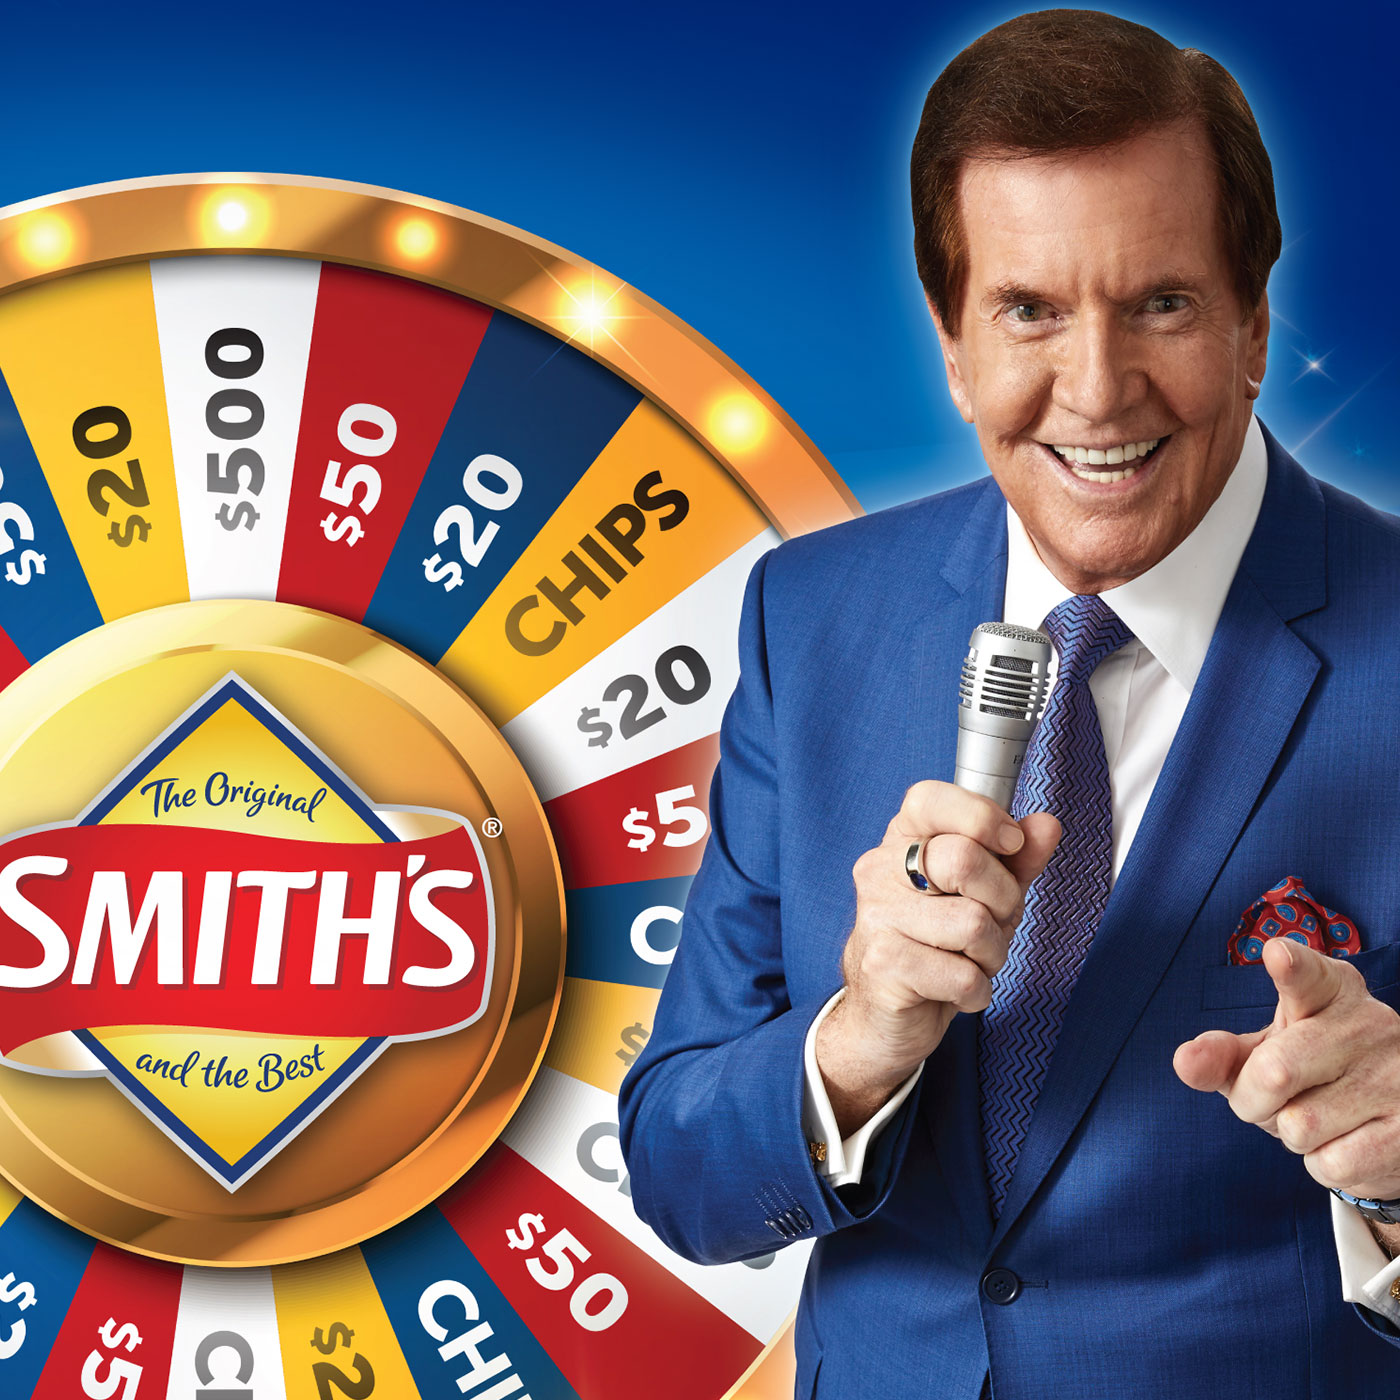 31st Smiths Spin to Win promotion tile